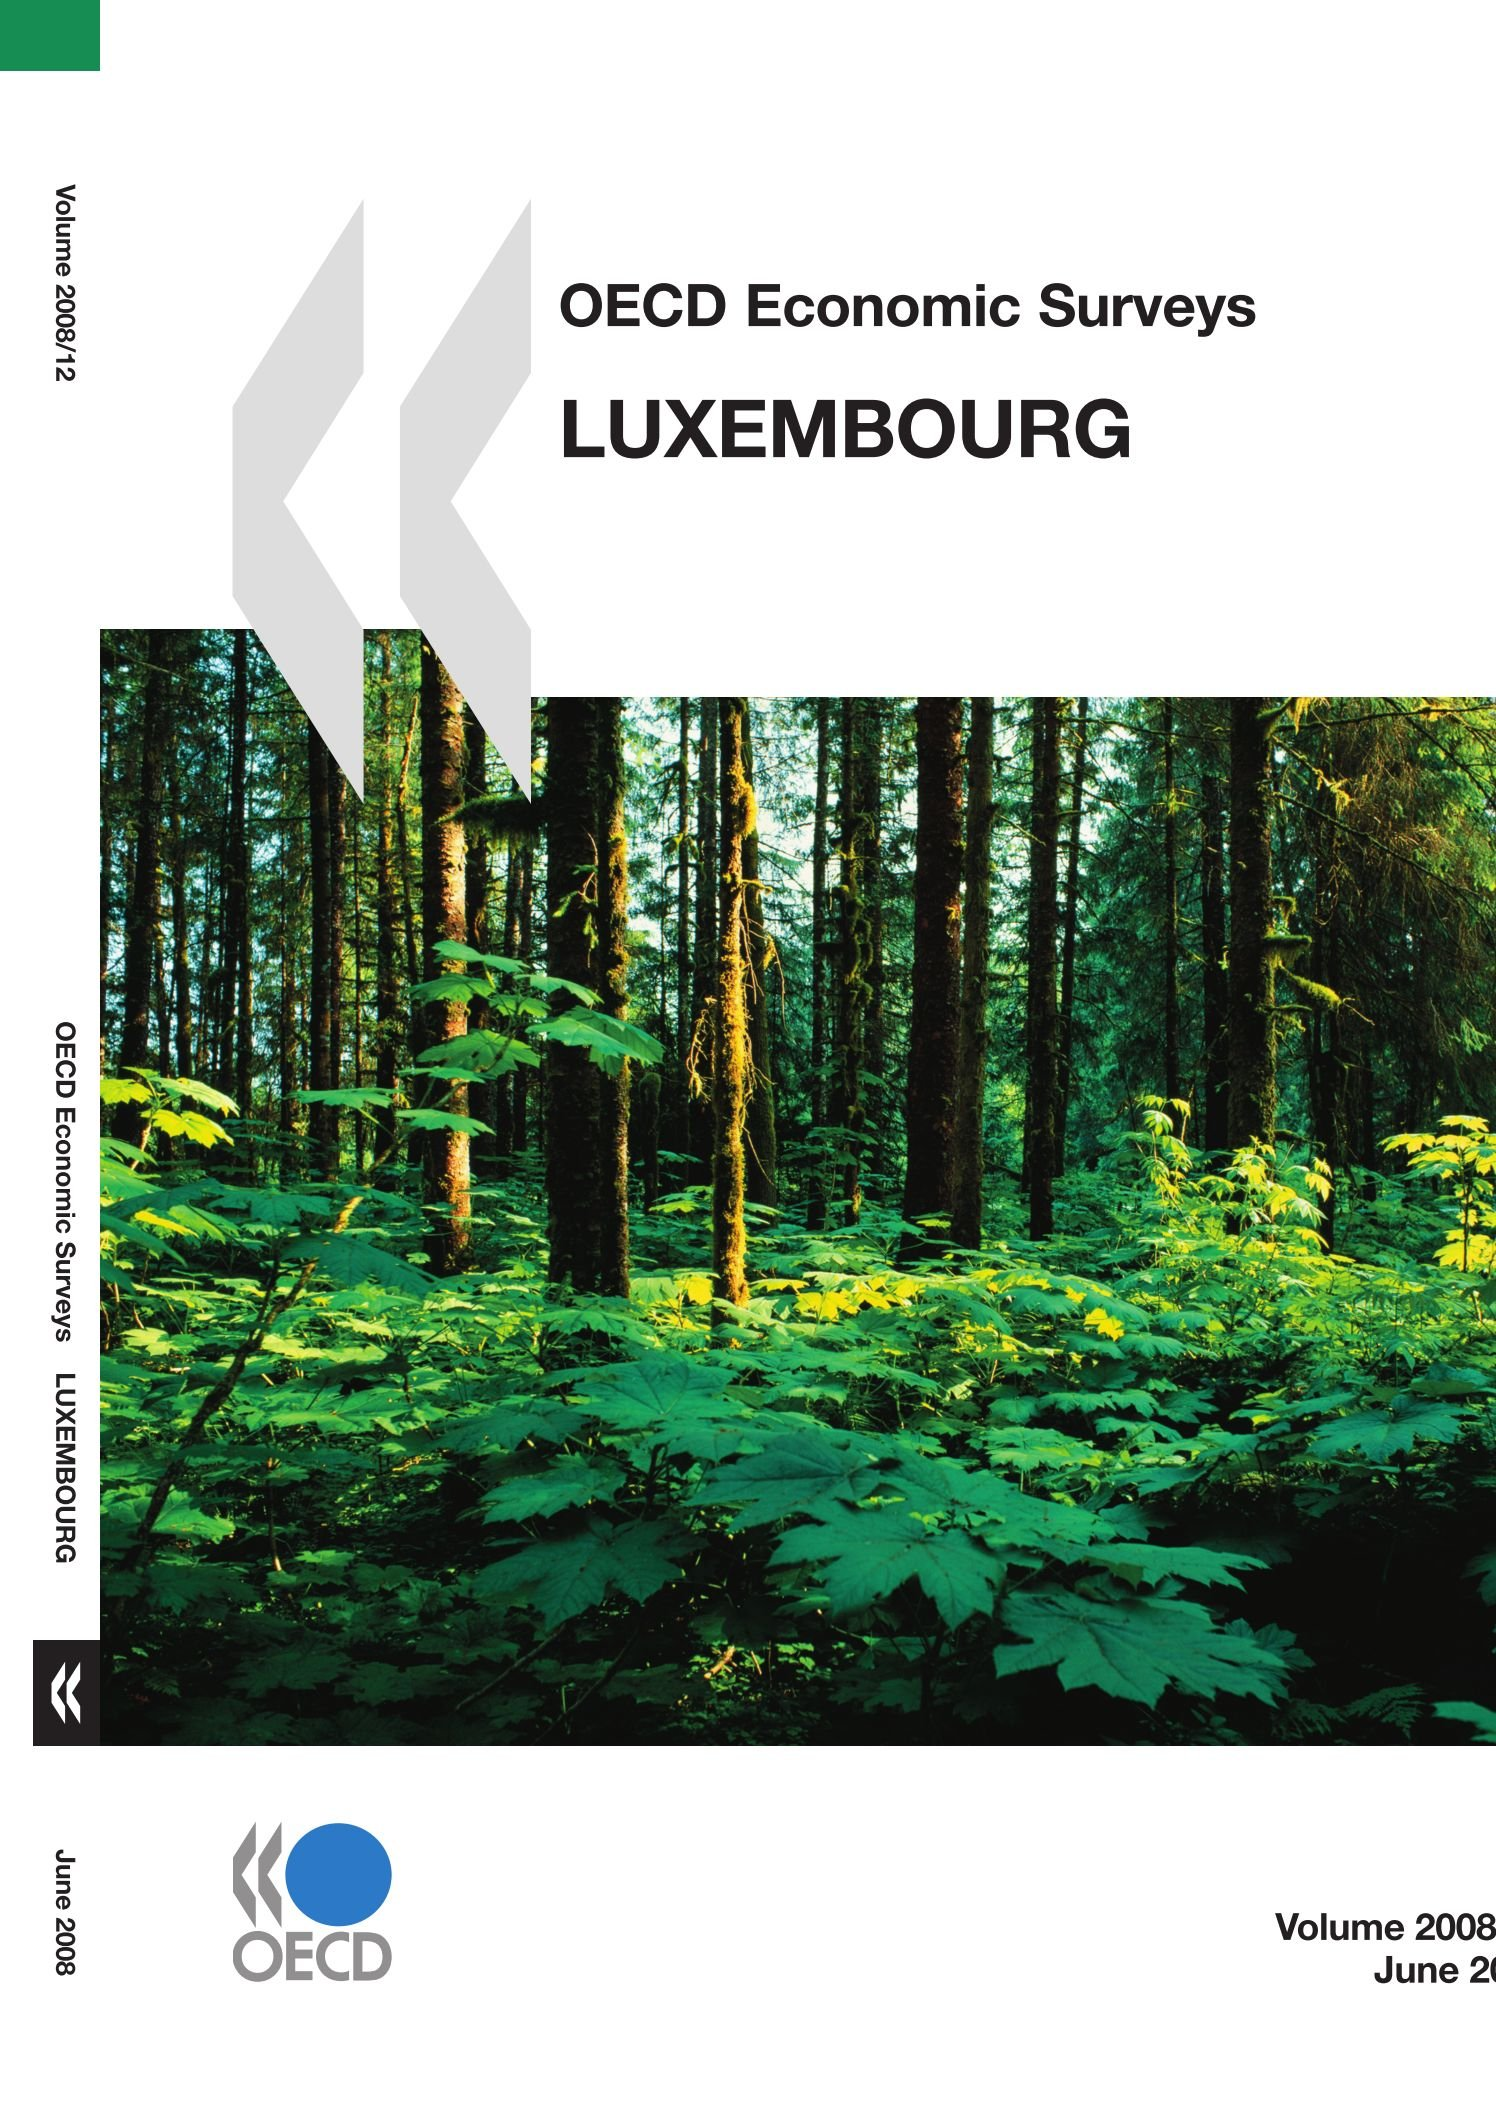 OECD Economic Surveys: Luxembourg 2008 (Oecd Economic Surveys 2008)